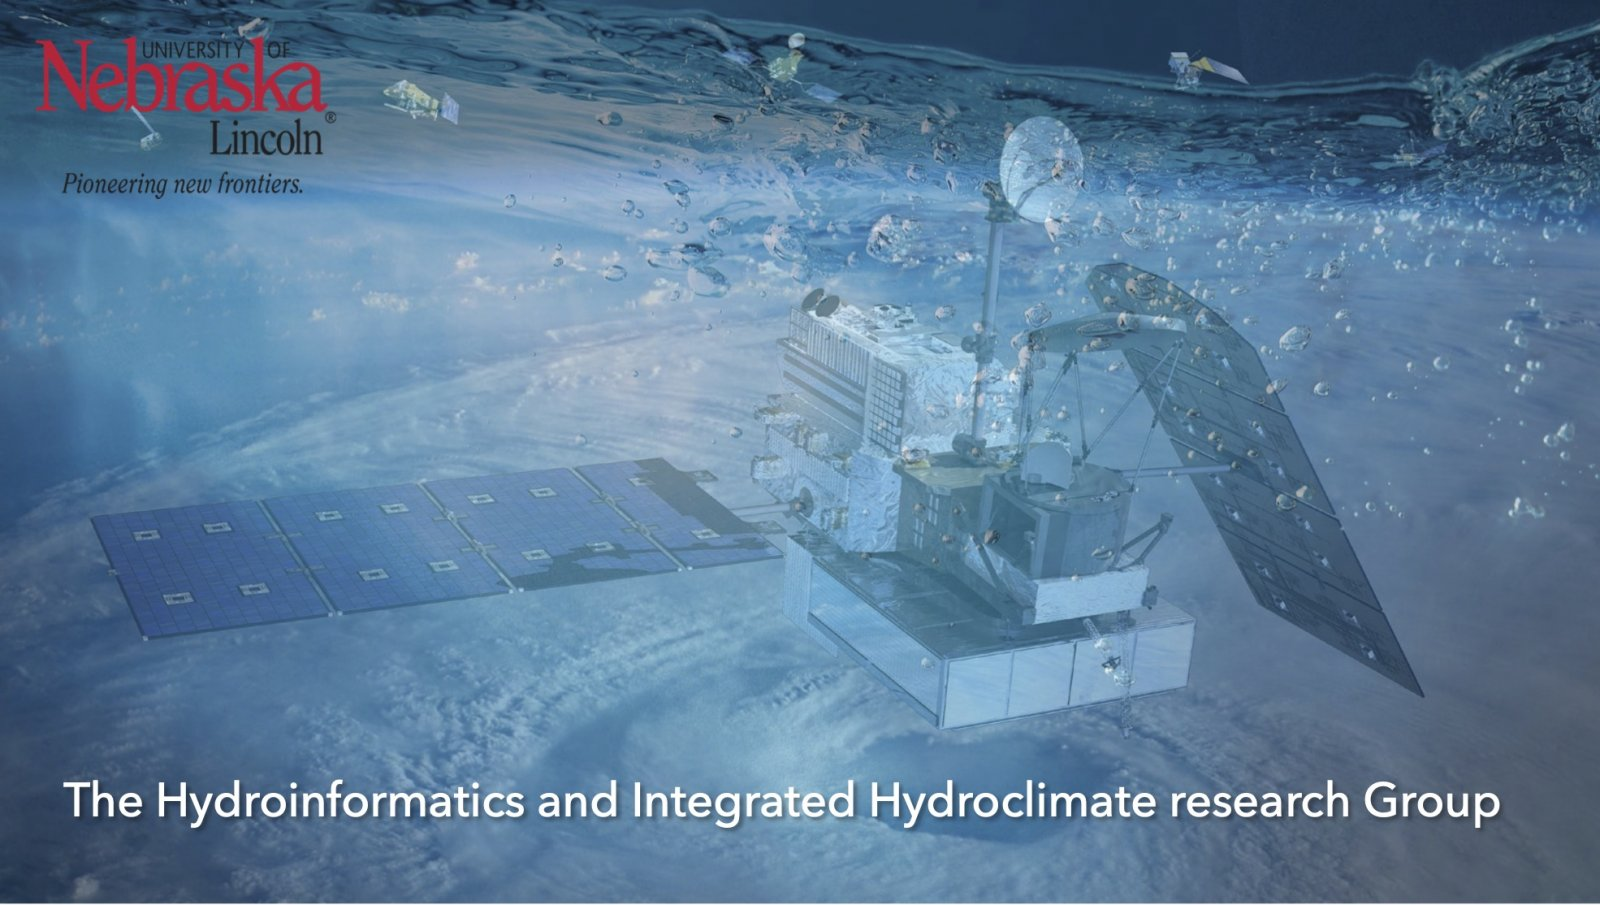 Hydroinformatics and Integrated Hydroclimate research Group